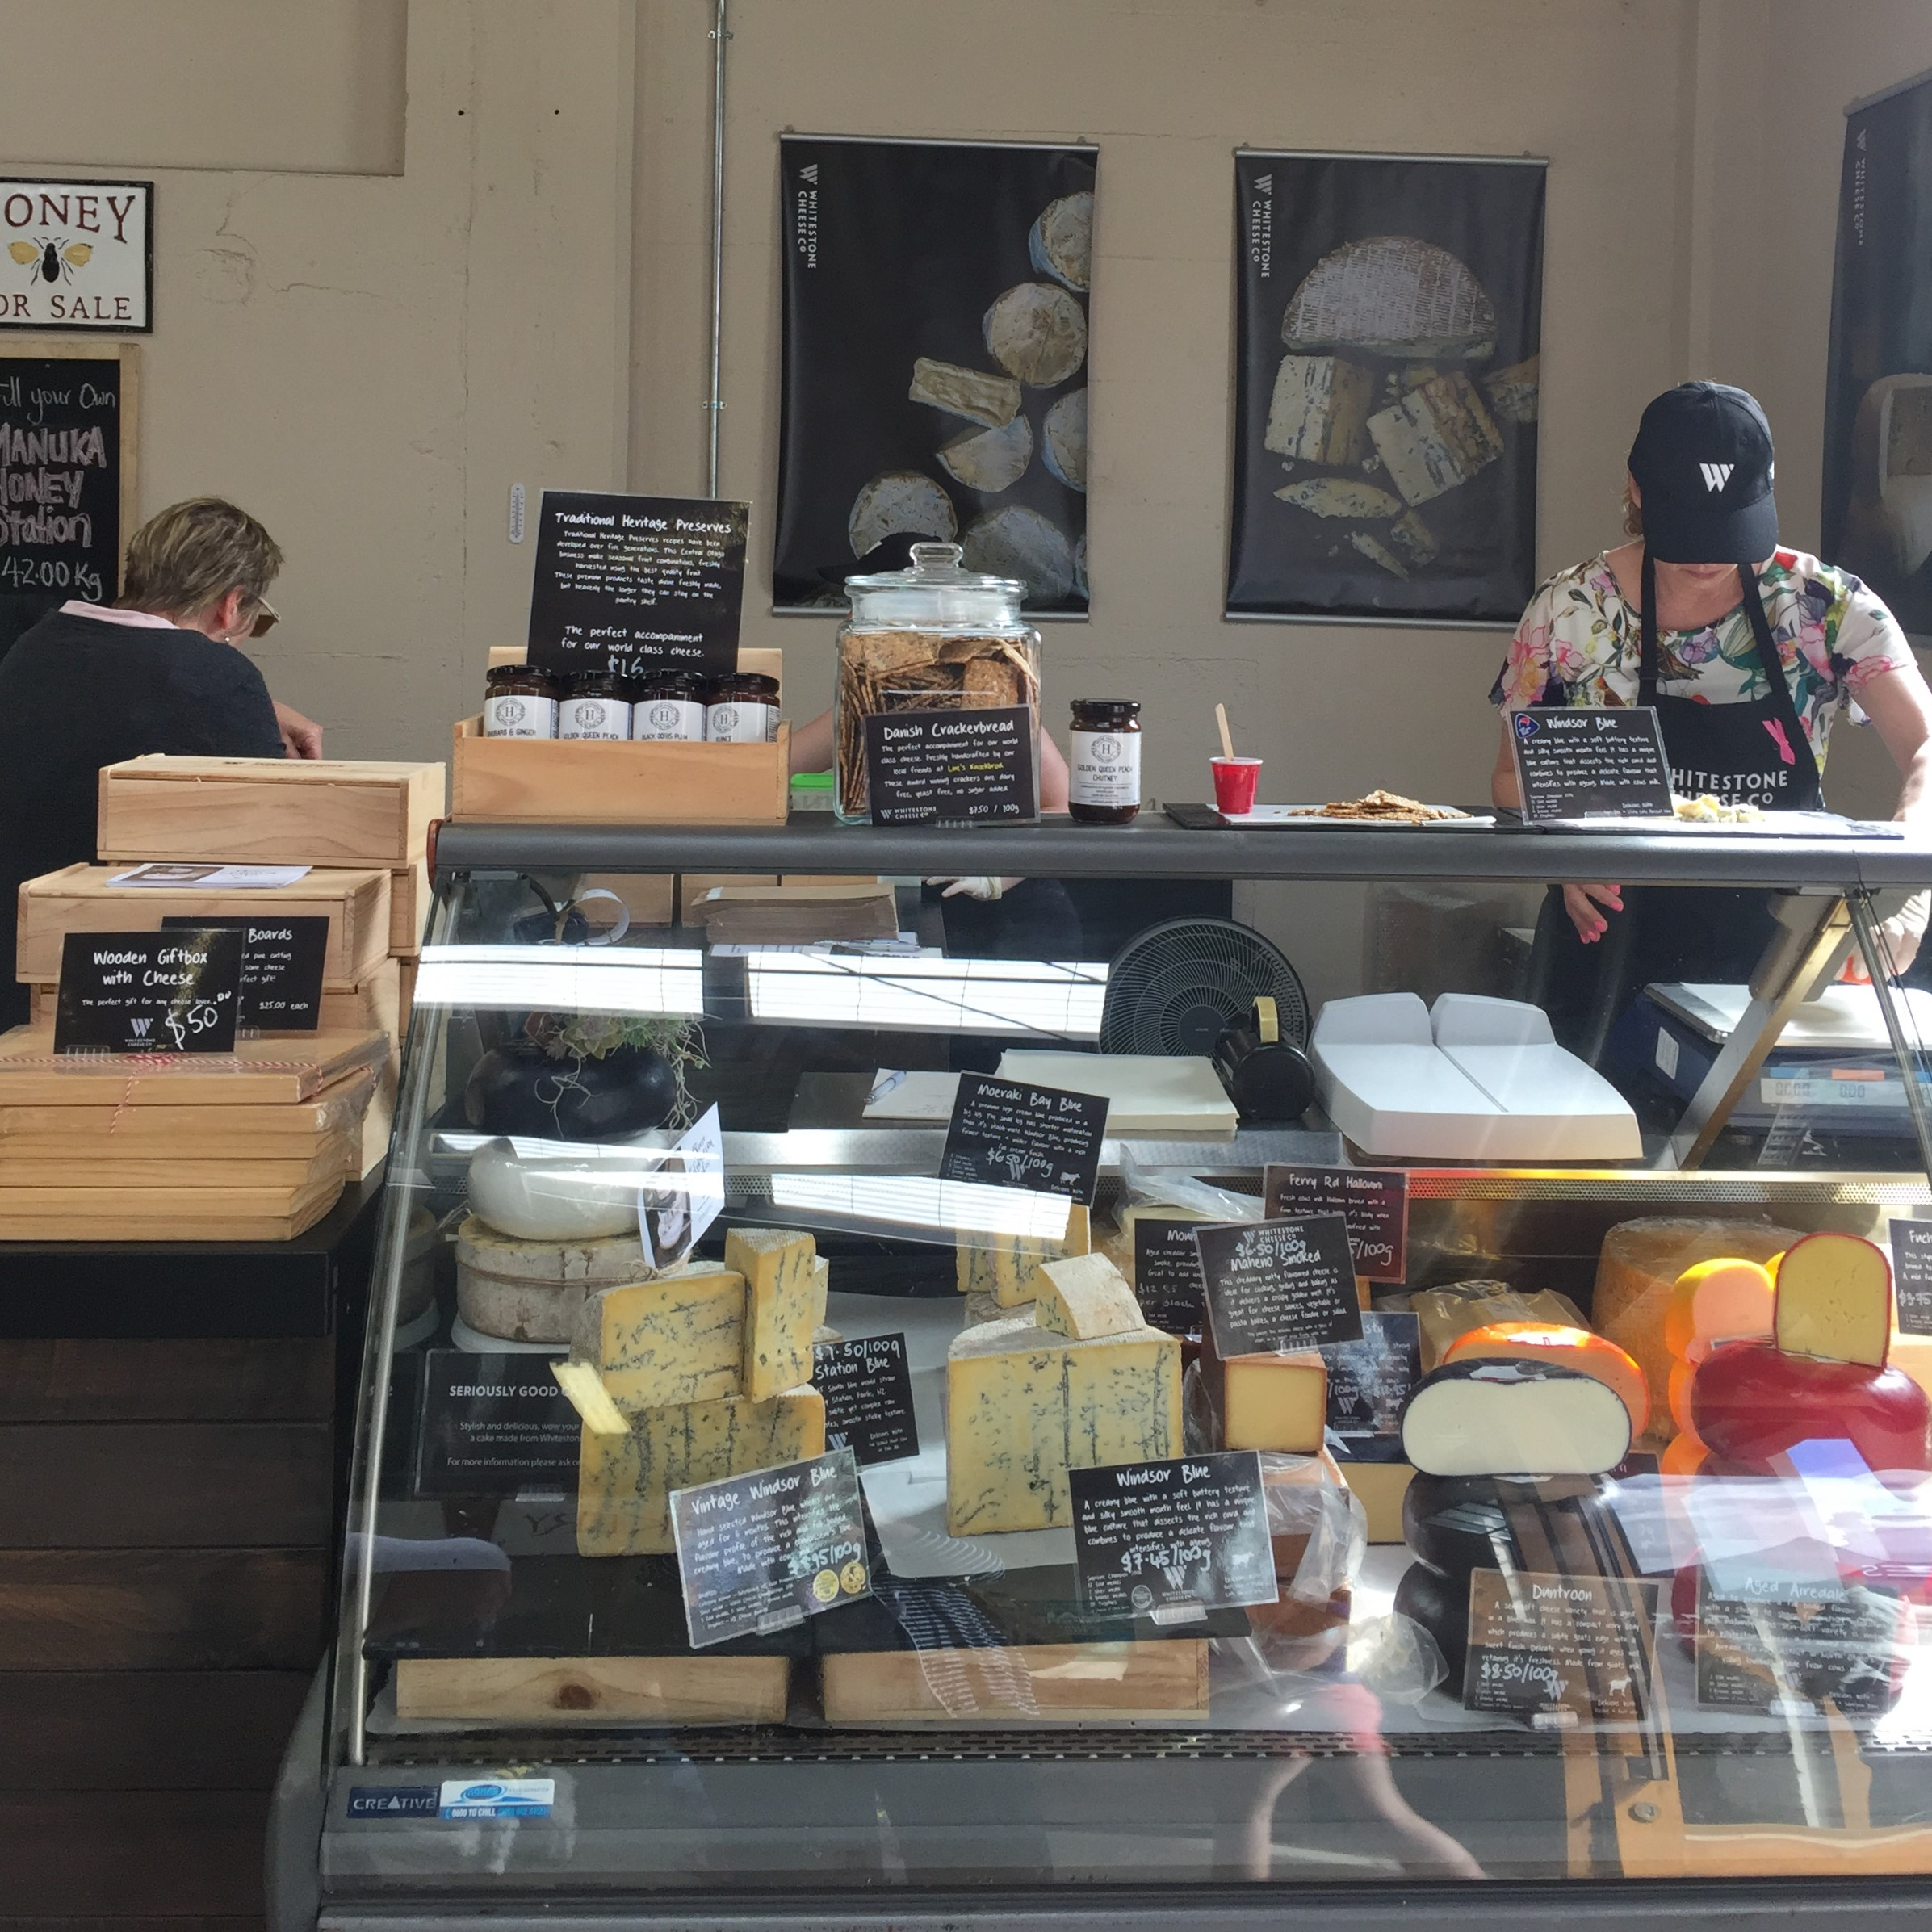 A cabinet full of Whitestone Cheese